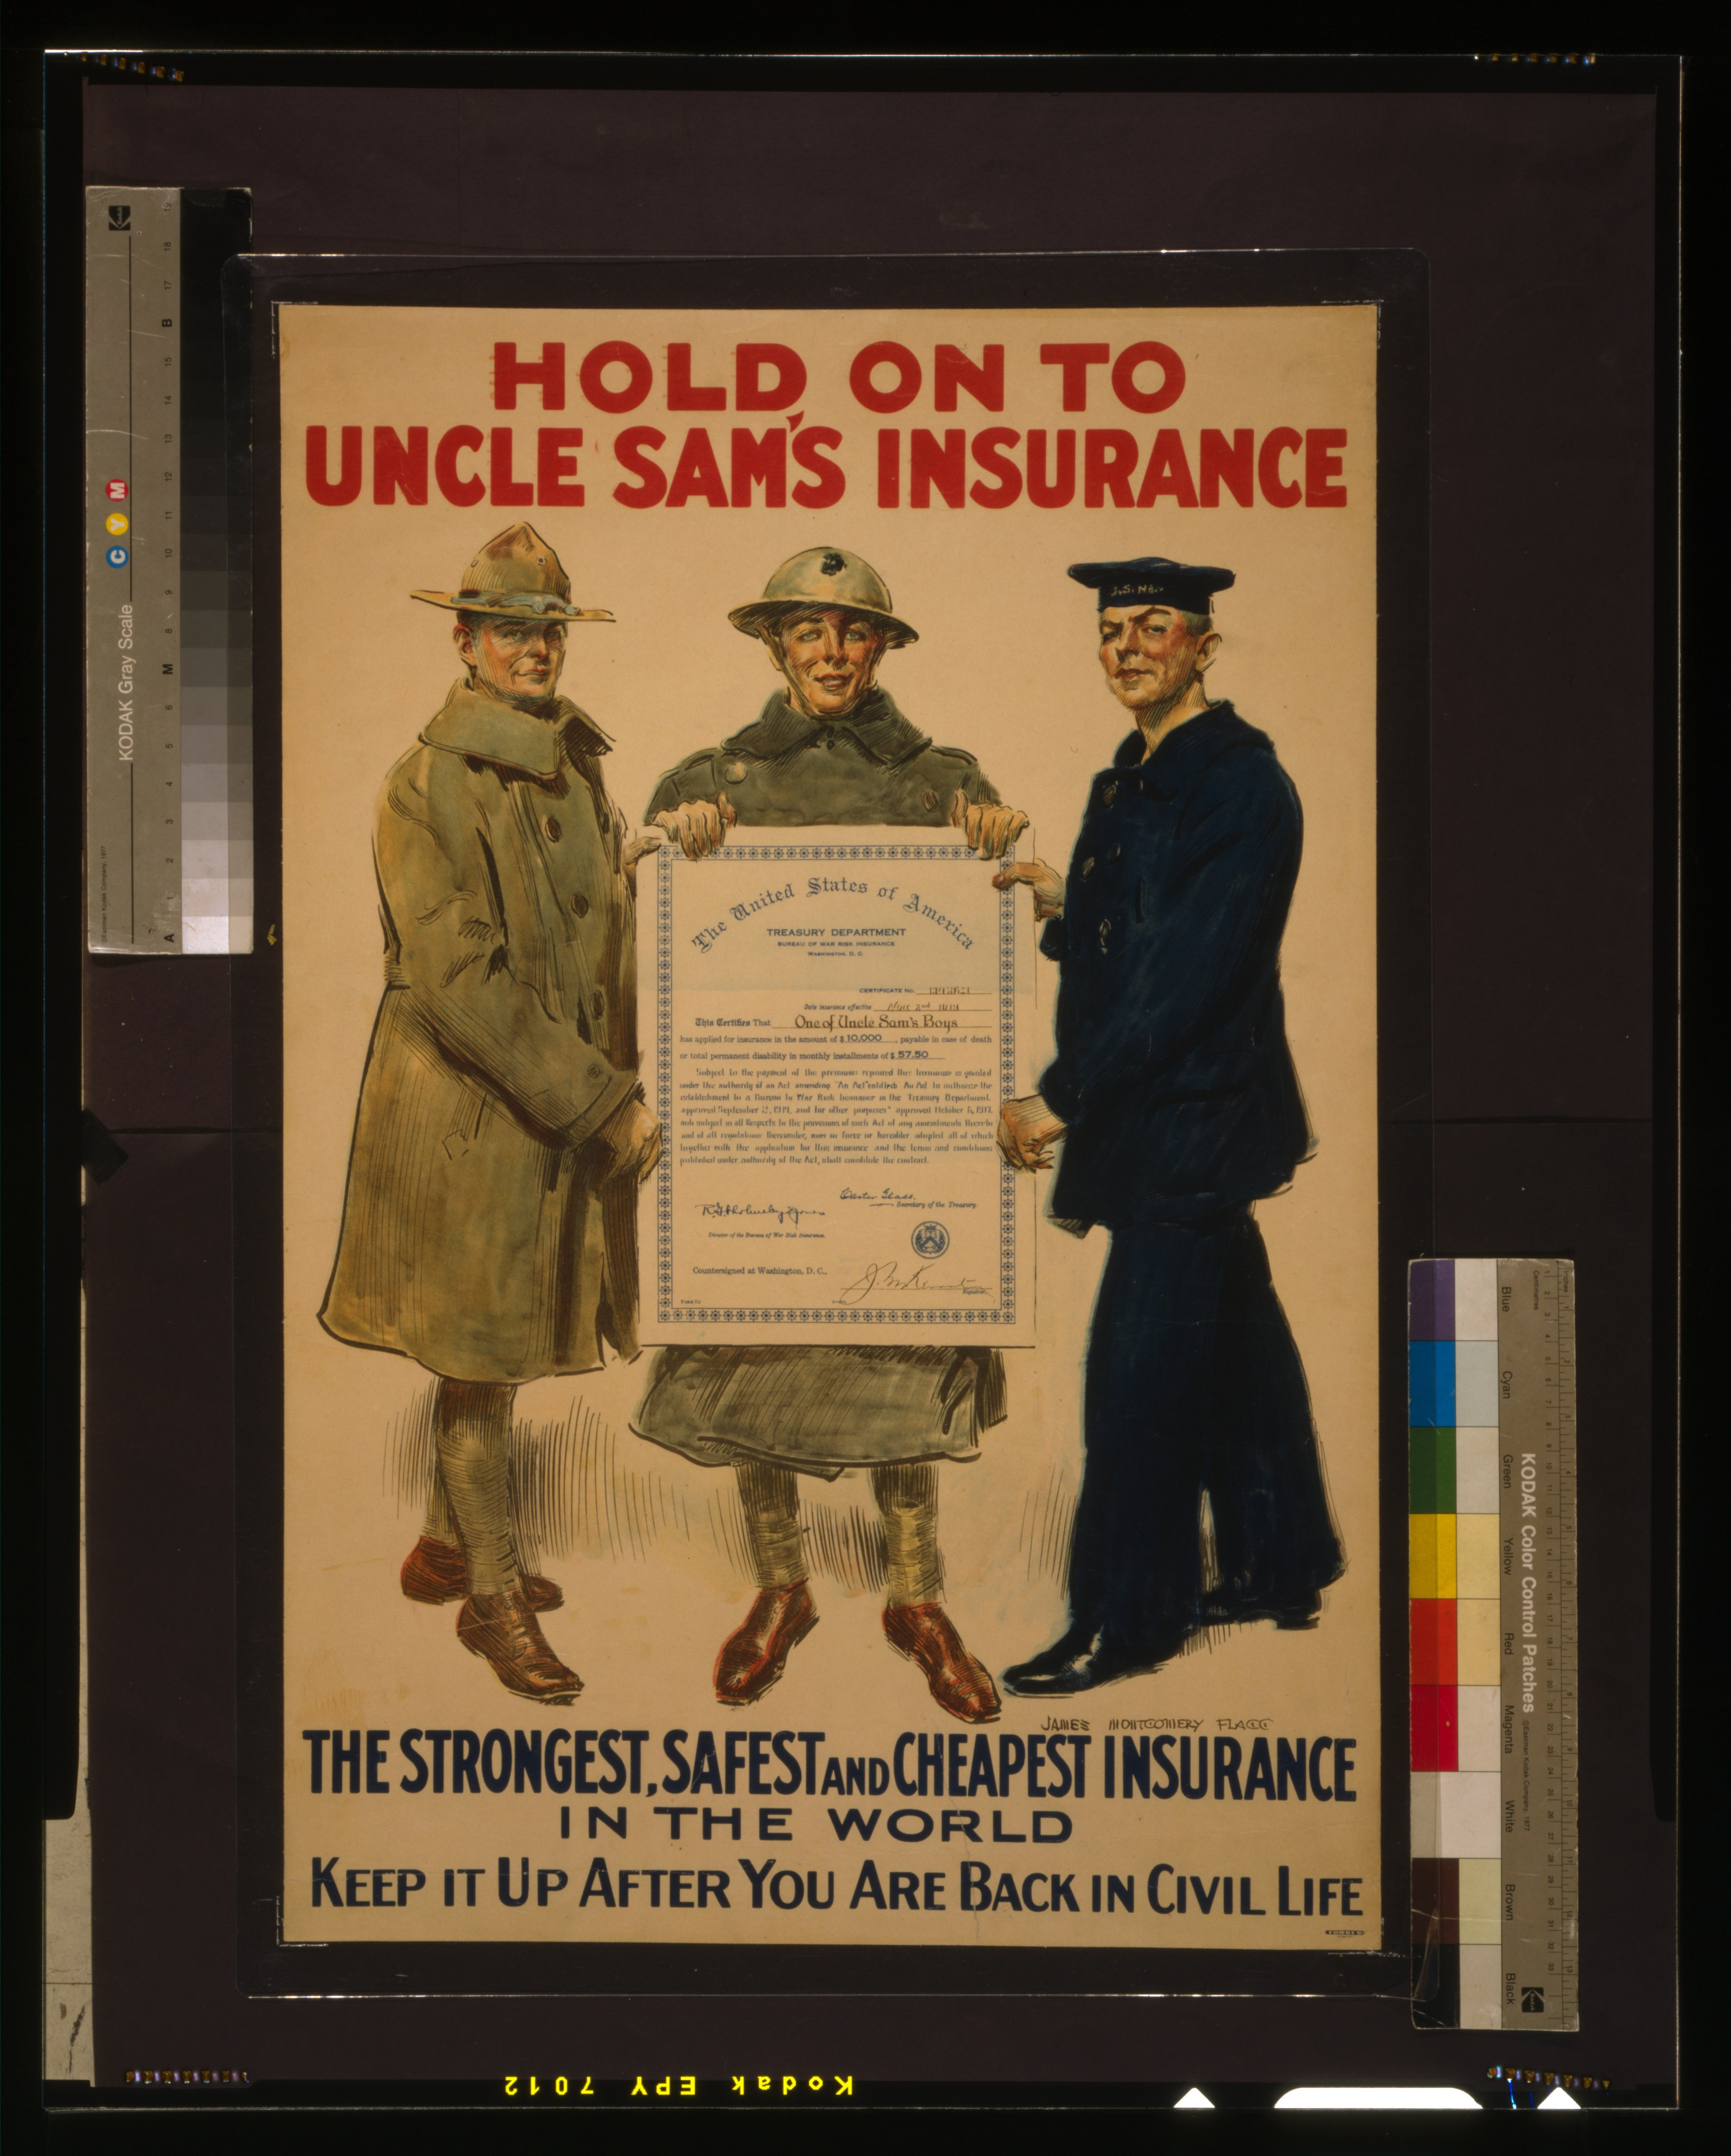 on to Uncle Sam's insurance, the strongest, safest and cheapest insurance in the world - Keep it up after you are back in civil life - James Montgomery